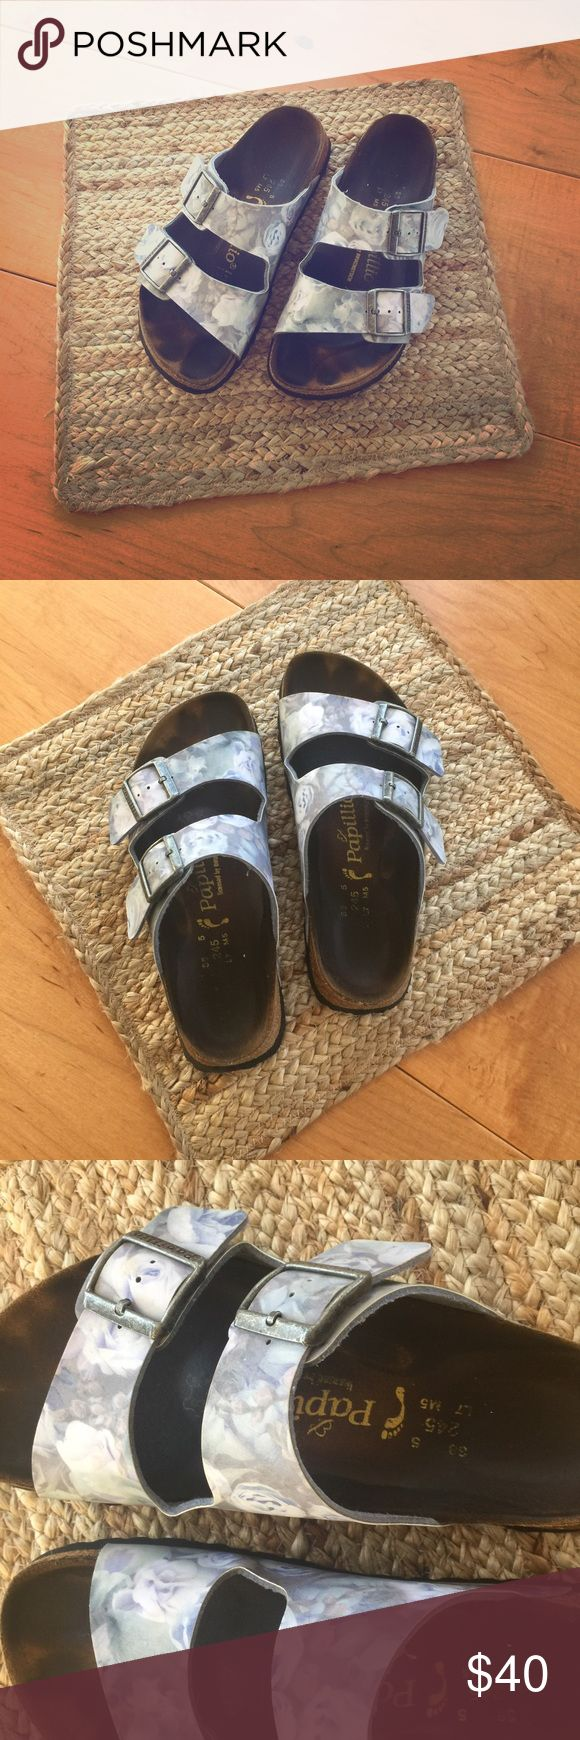 Size 8 floral birks! Used condition, but still lots of life left! Size 8 and very comfy! Ask before you buy!! Birkenstock Shoes